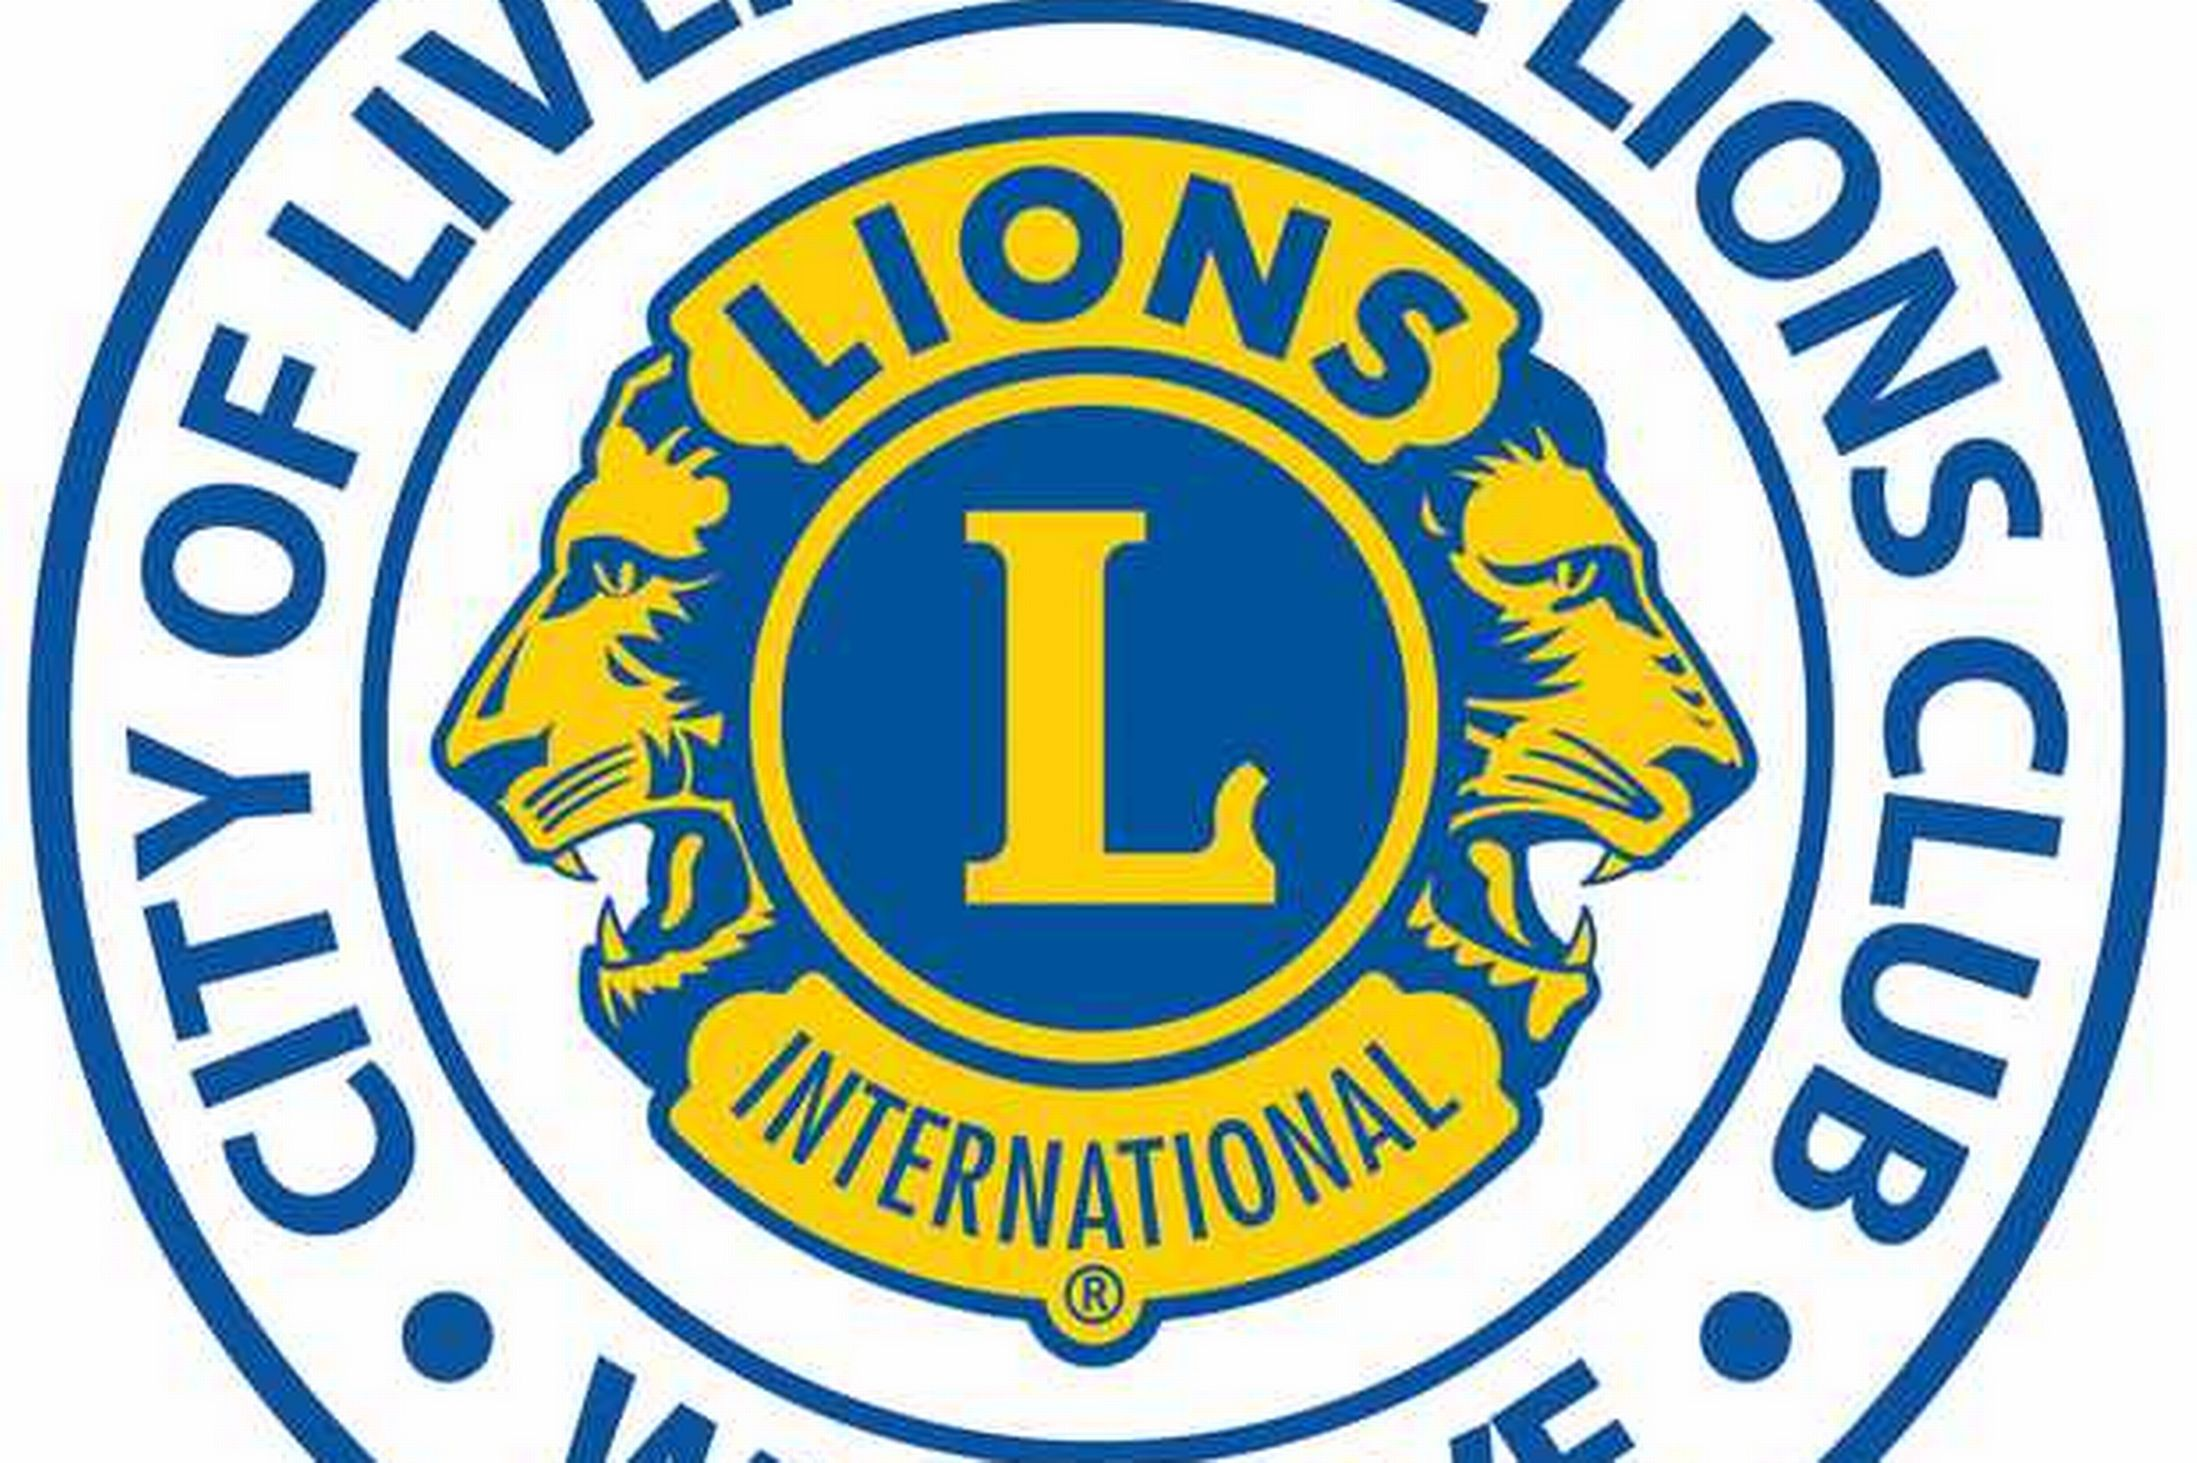 10 lions club logo vector images lions international